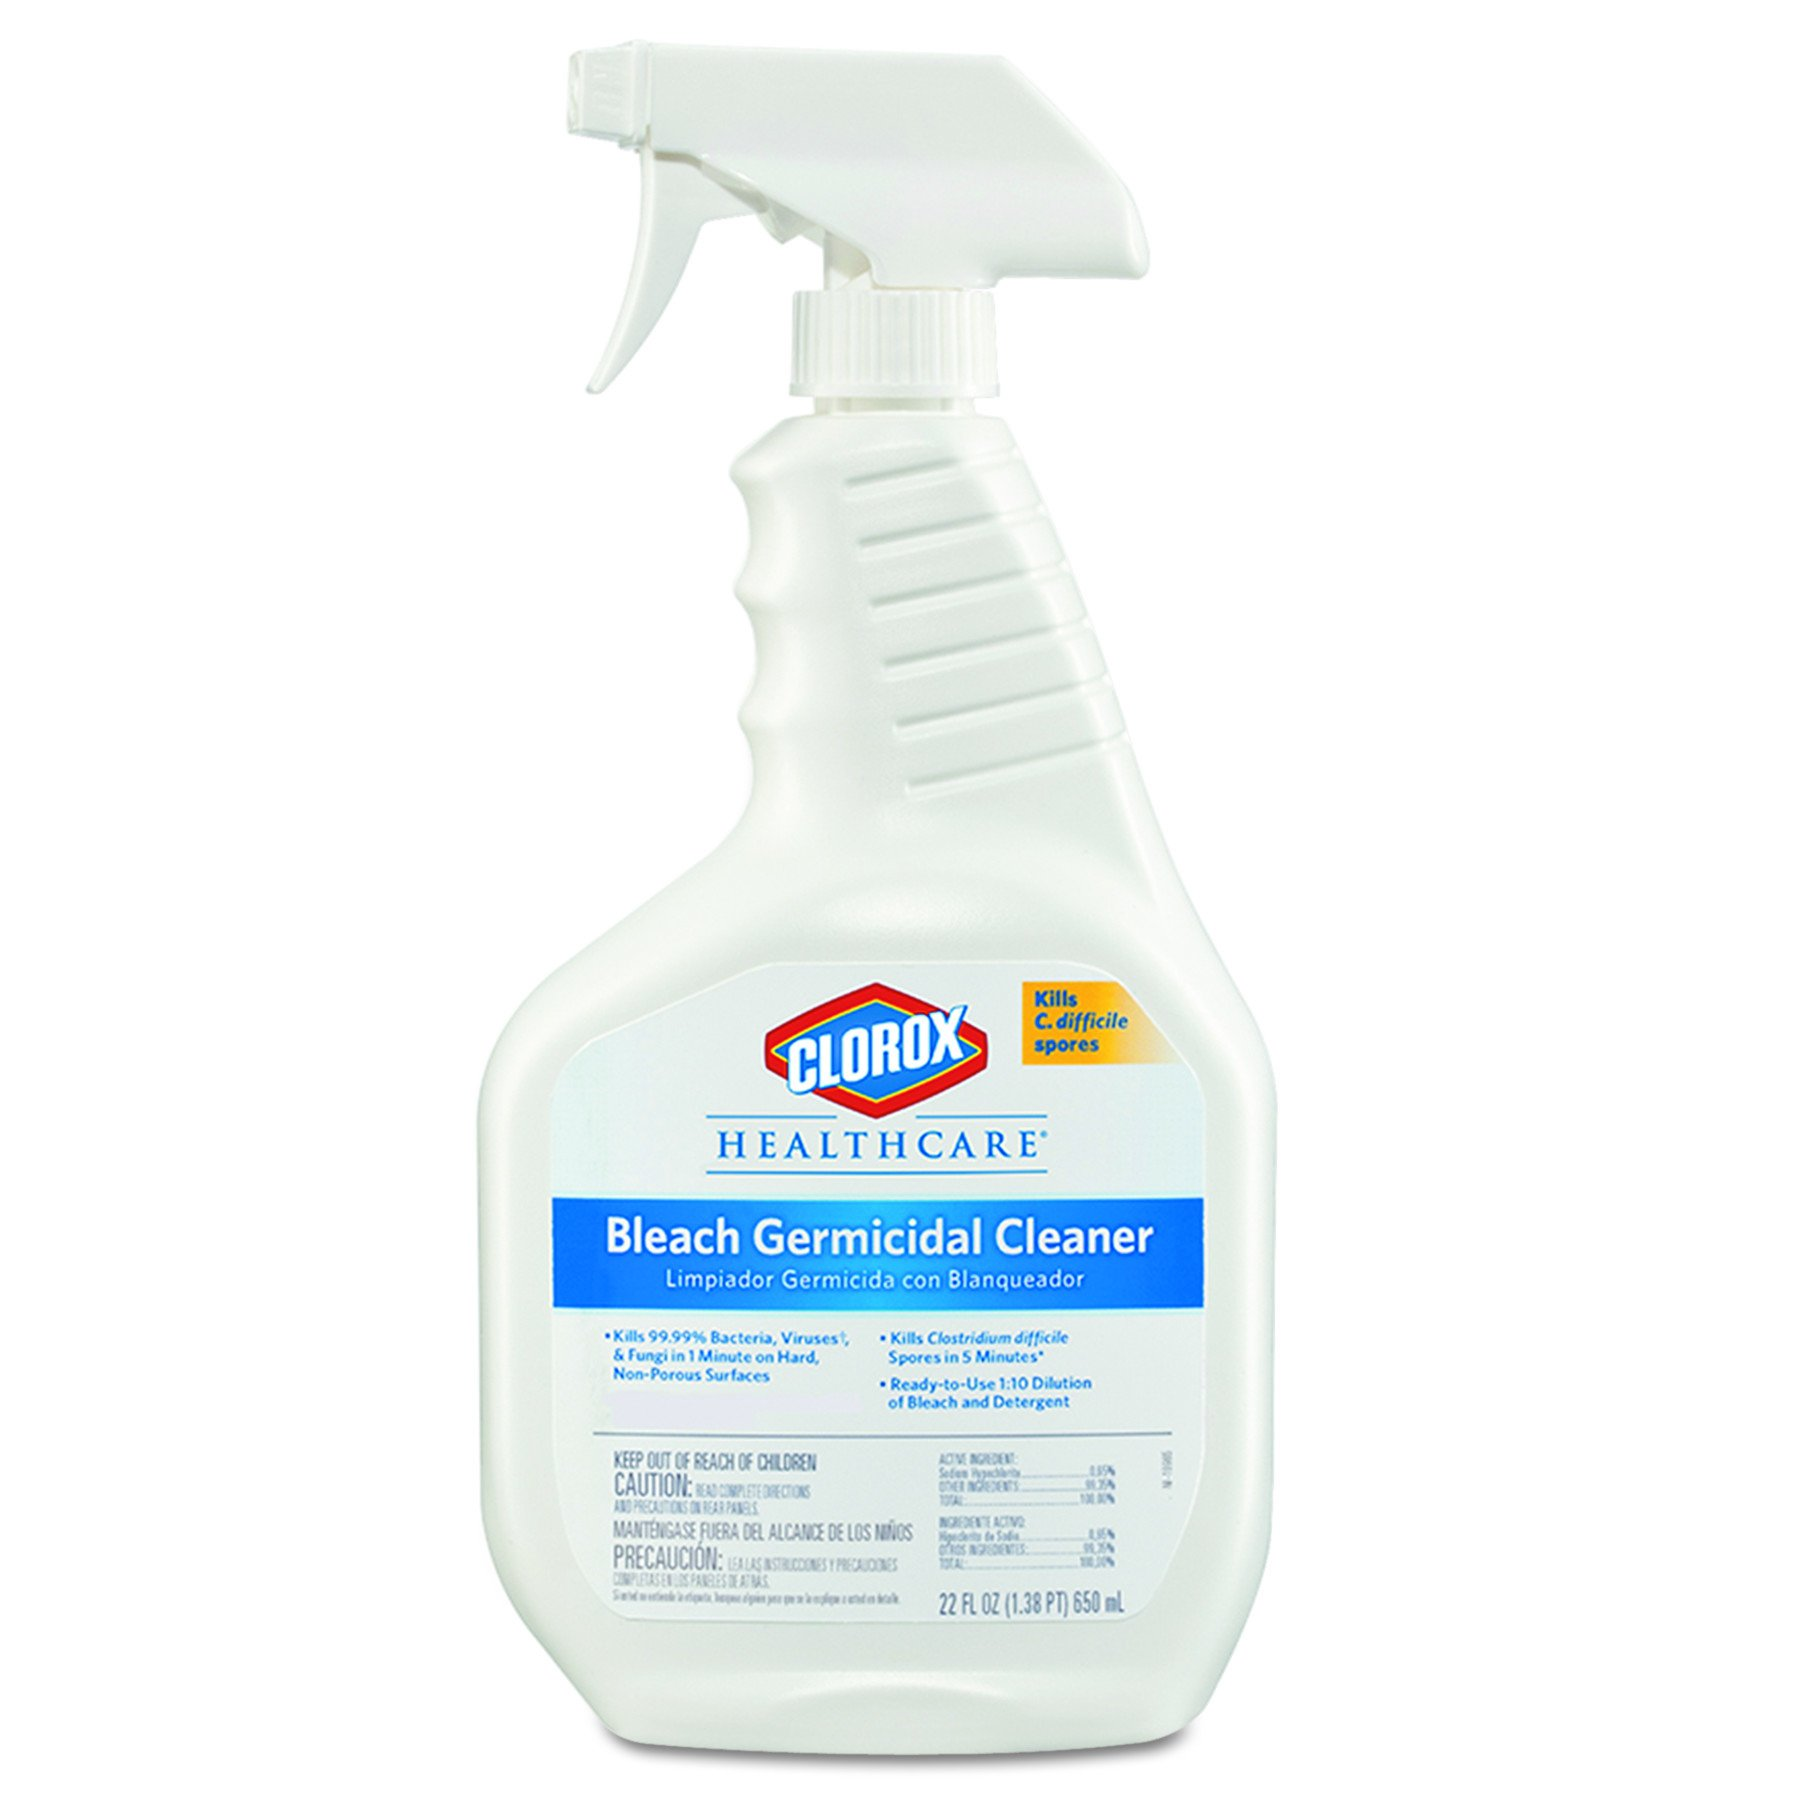 Clorox Healthcare 68967CT Bleach Germicidal Cleaner, 22oz Spray Bottle (Case of 8)